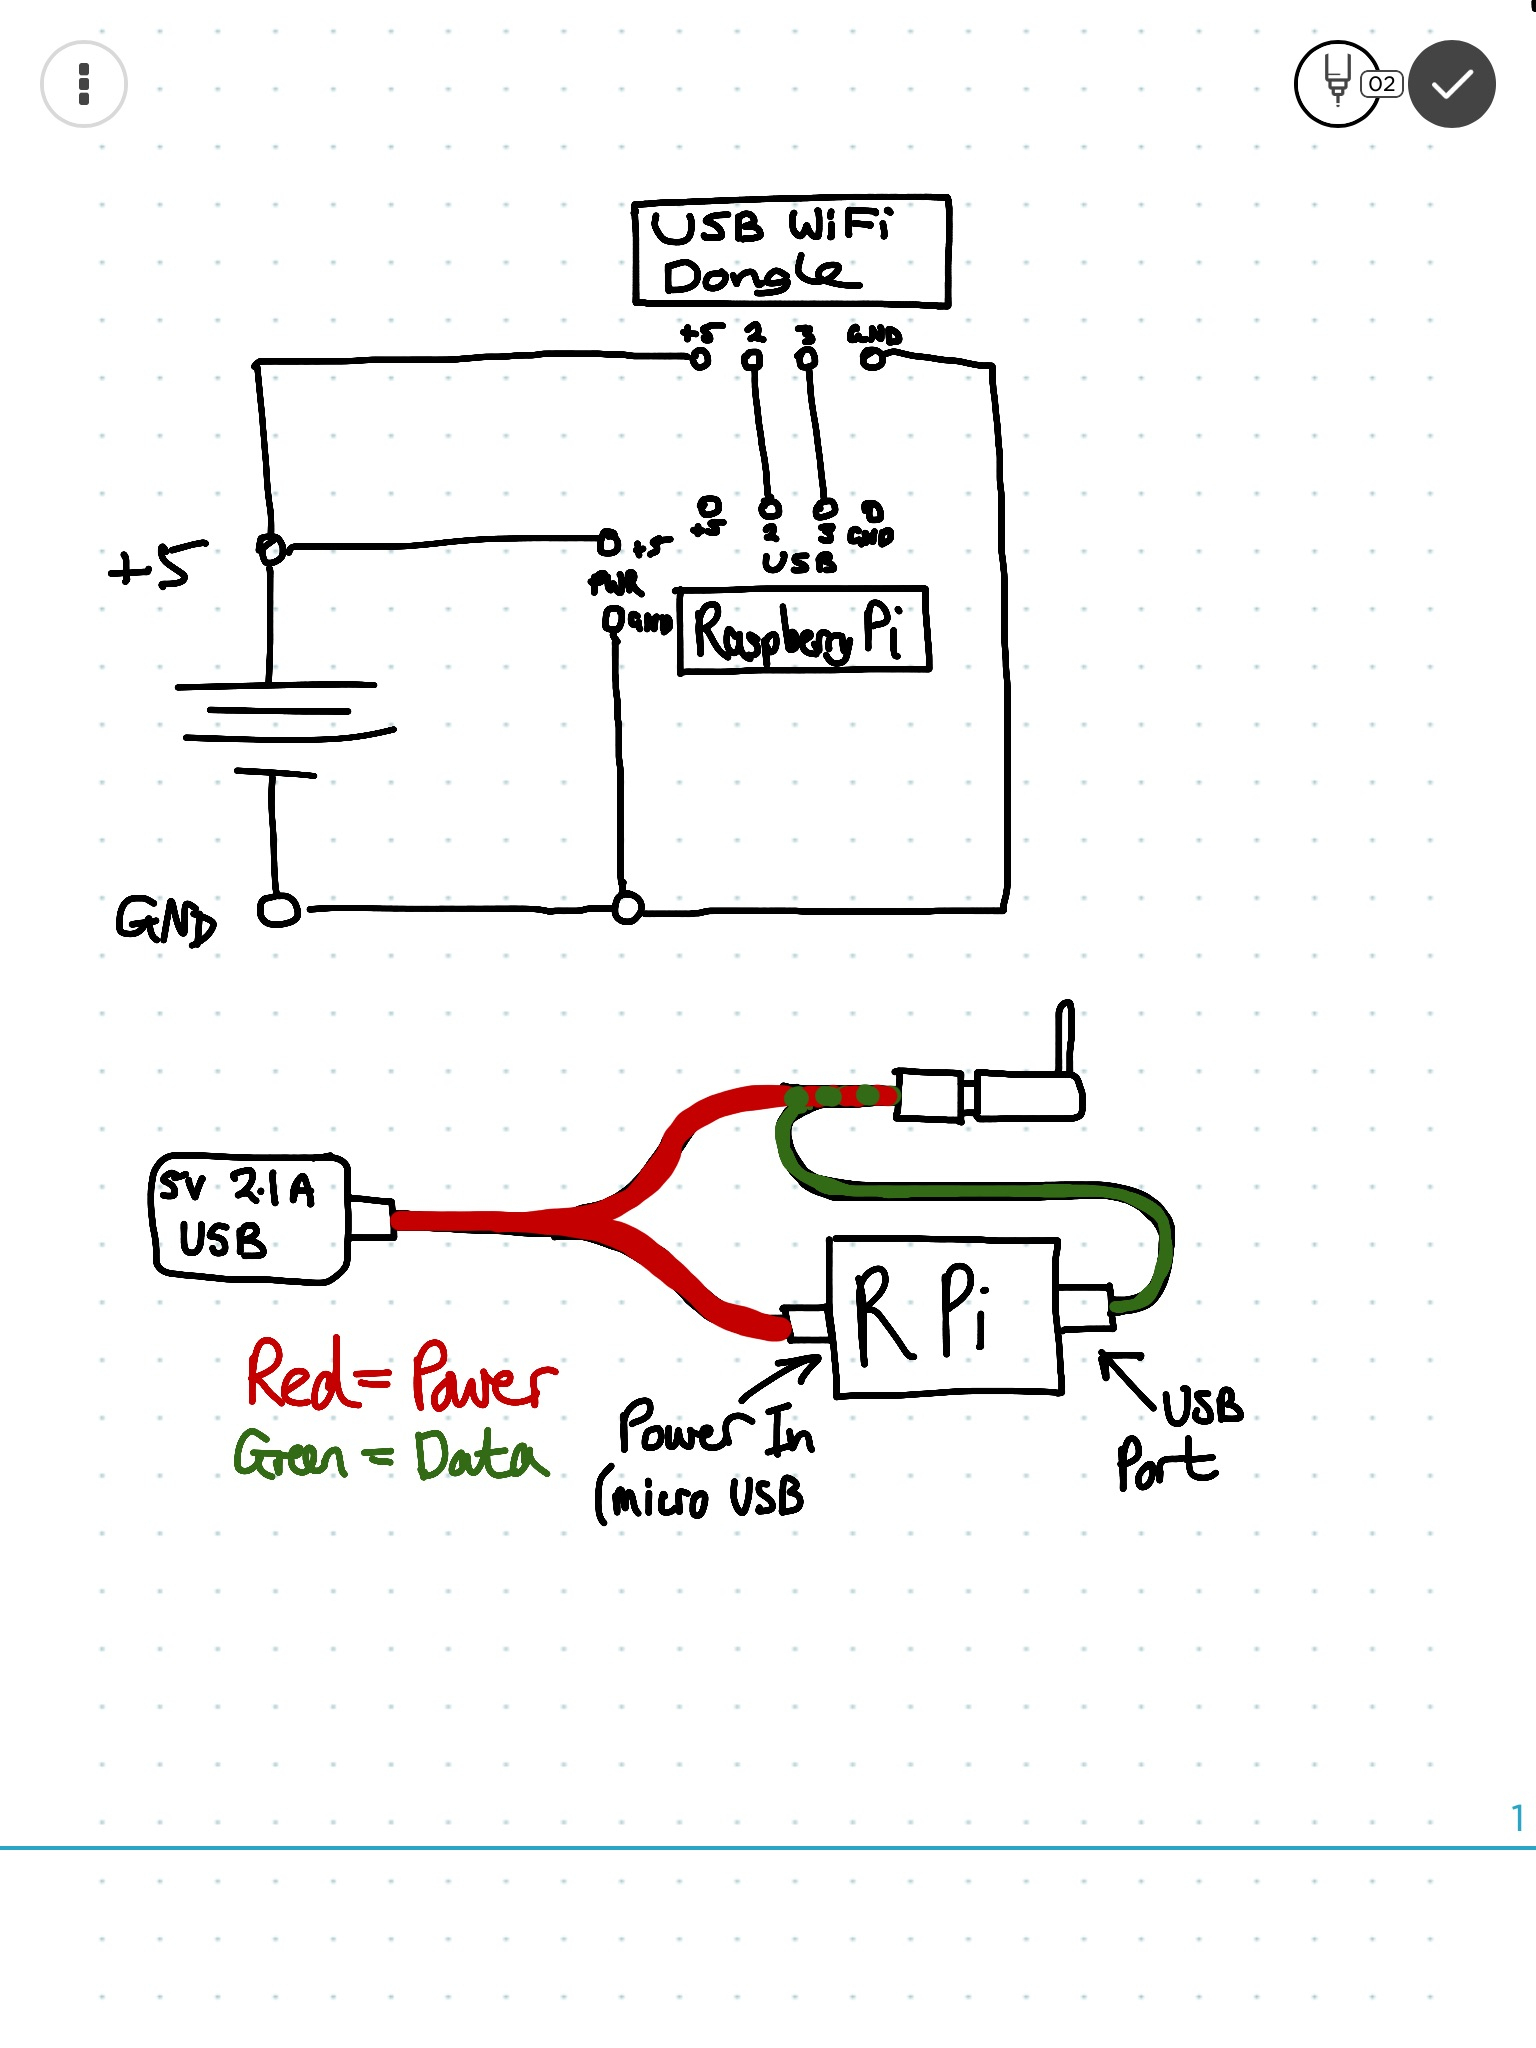 6 Prong Usb Charger Wiring Diagram